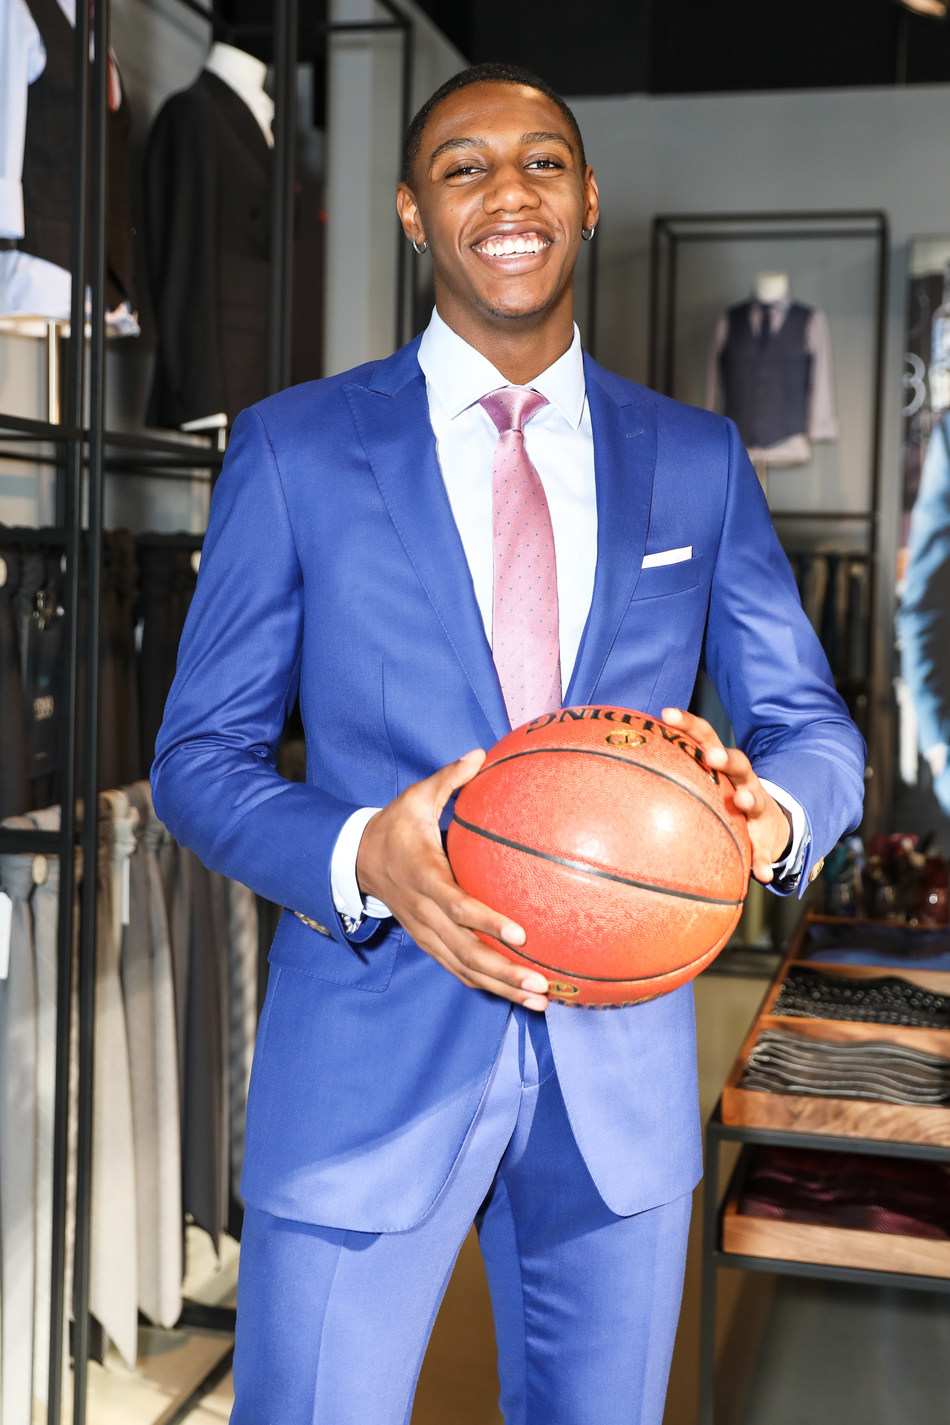 INDOCHINO's first Signature NBA Athlete, RJ Barrett, will be running a series of campaigns, including an exclusive RJ Barrett collection of custom apparel and customizations handpicked to coincide with his 2019-2020 NBA season debut. (CNW Group/Indochino Apparel Inc.)